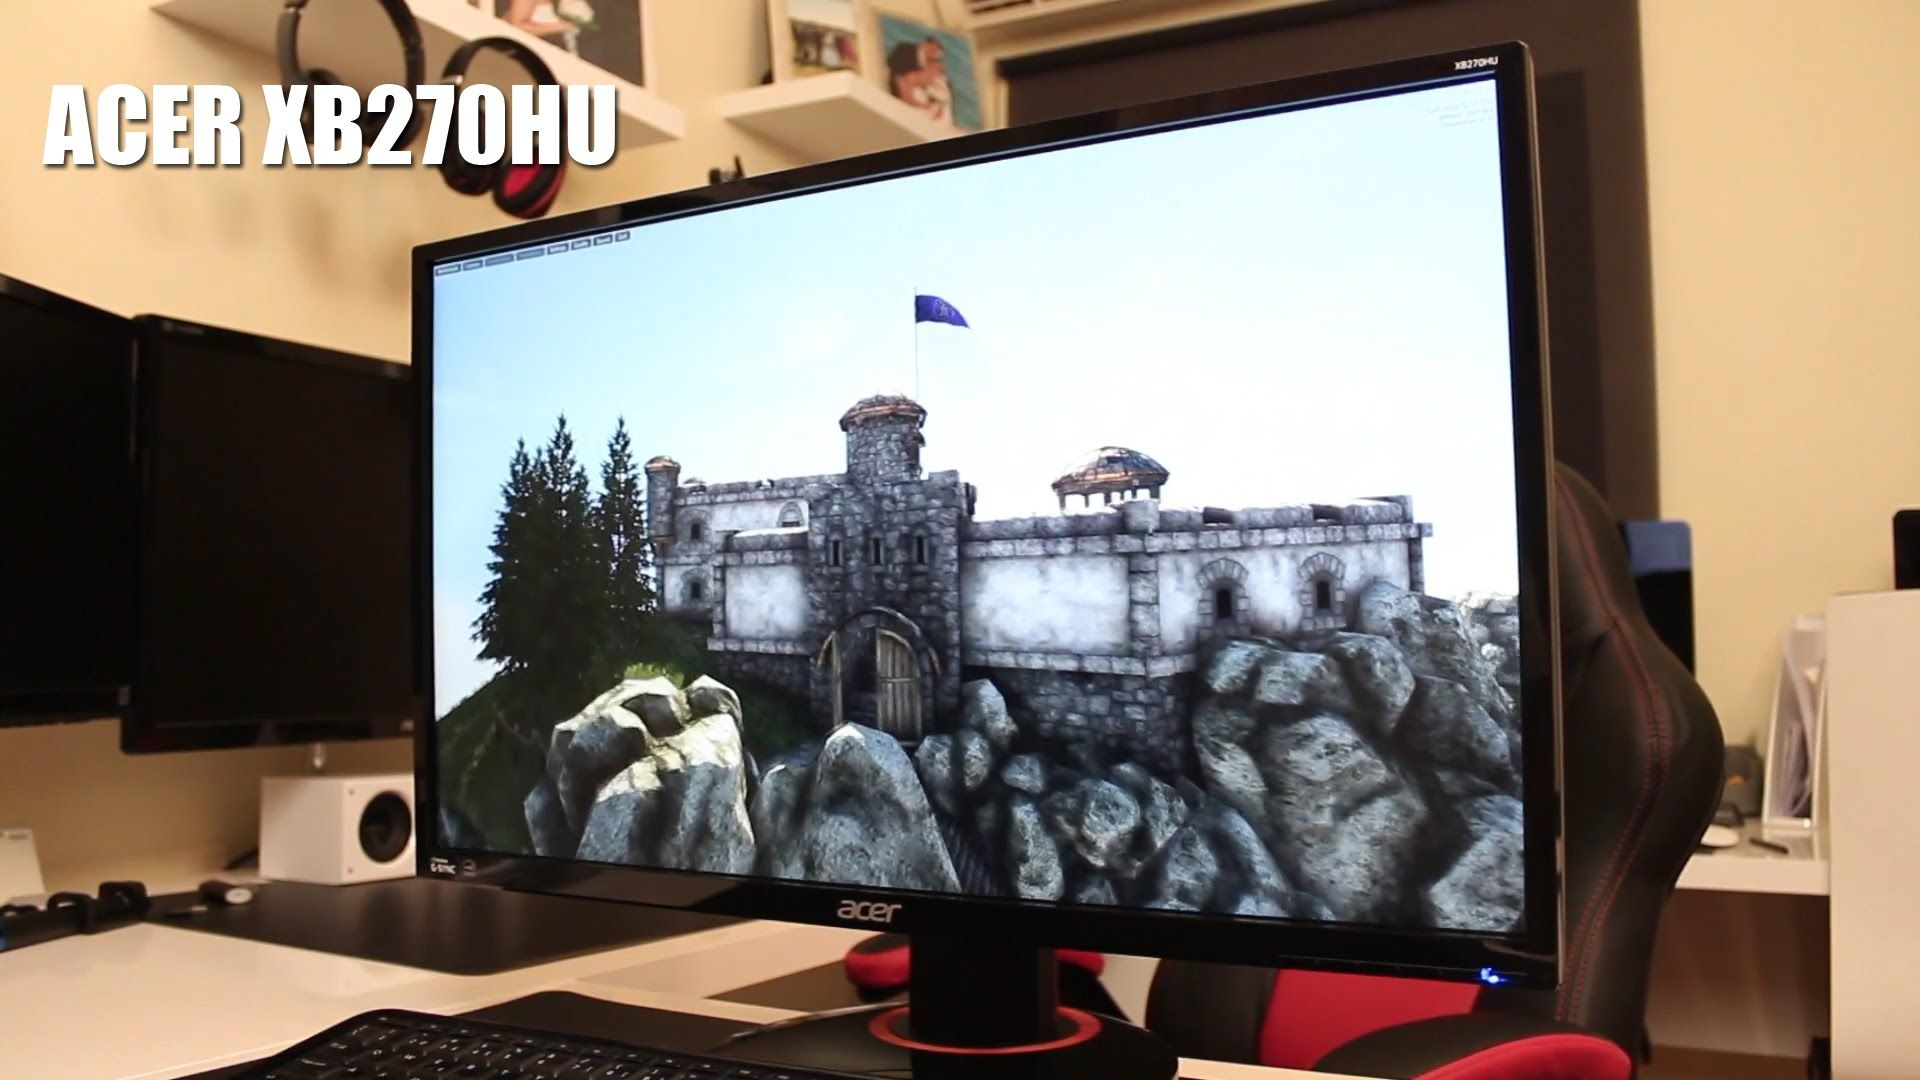 ACER XB270HU Setup, Overview & Opinion